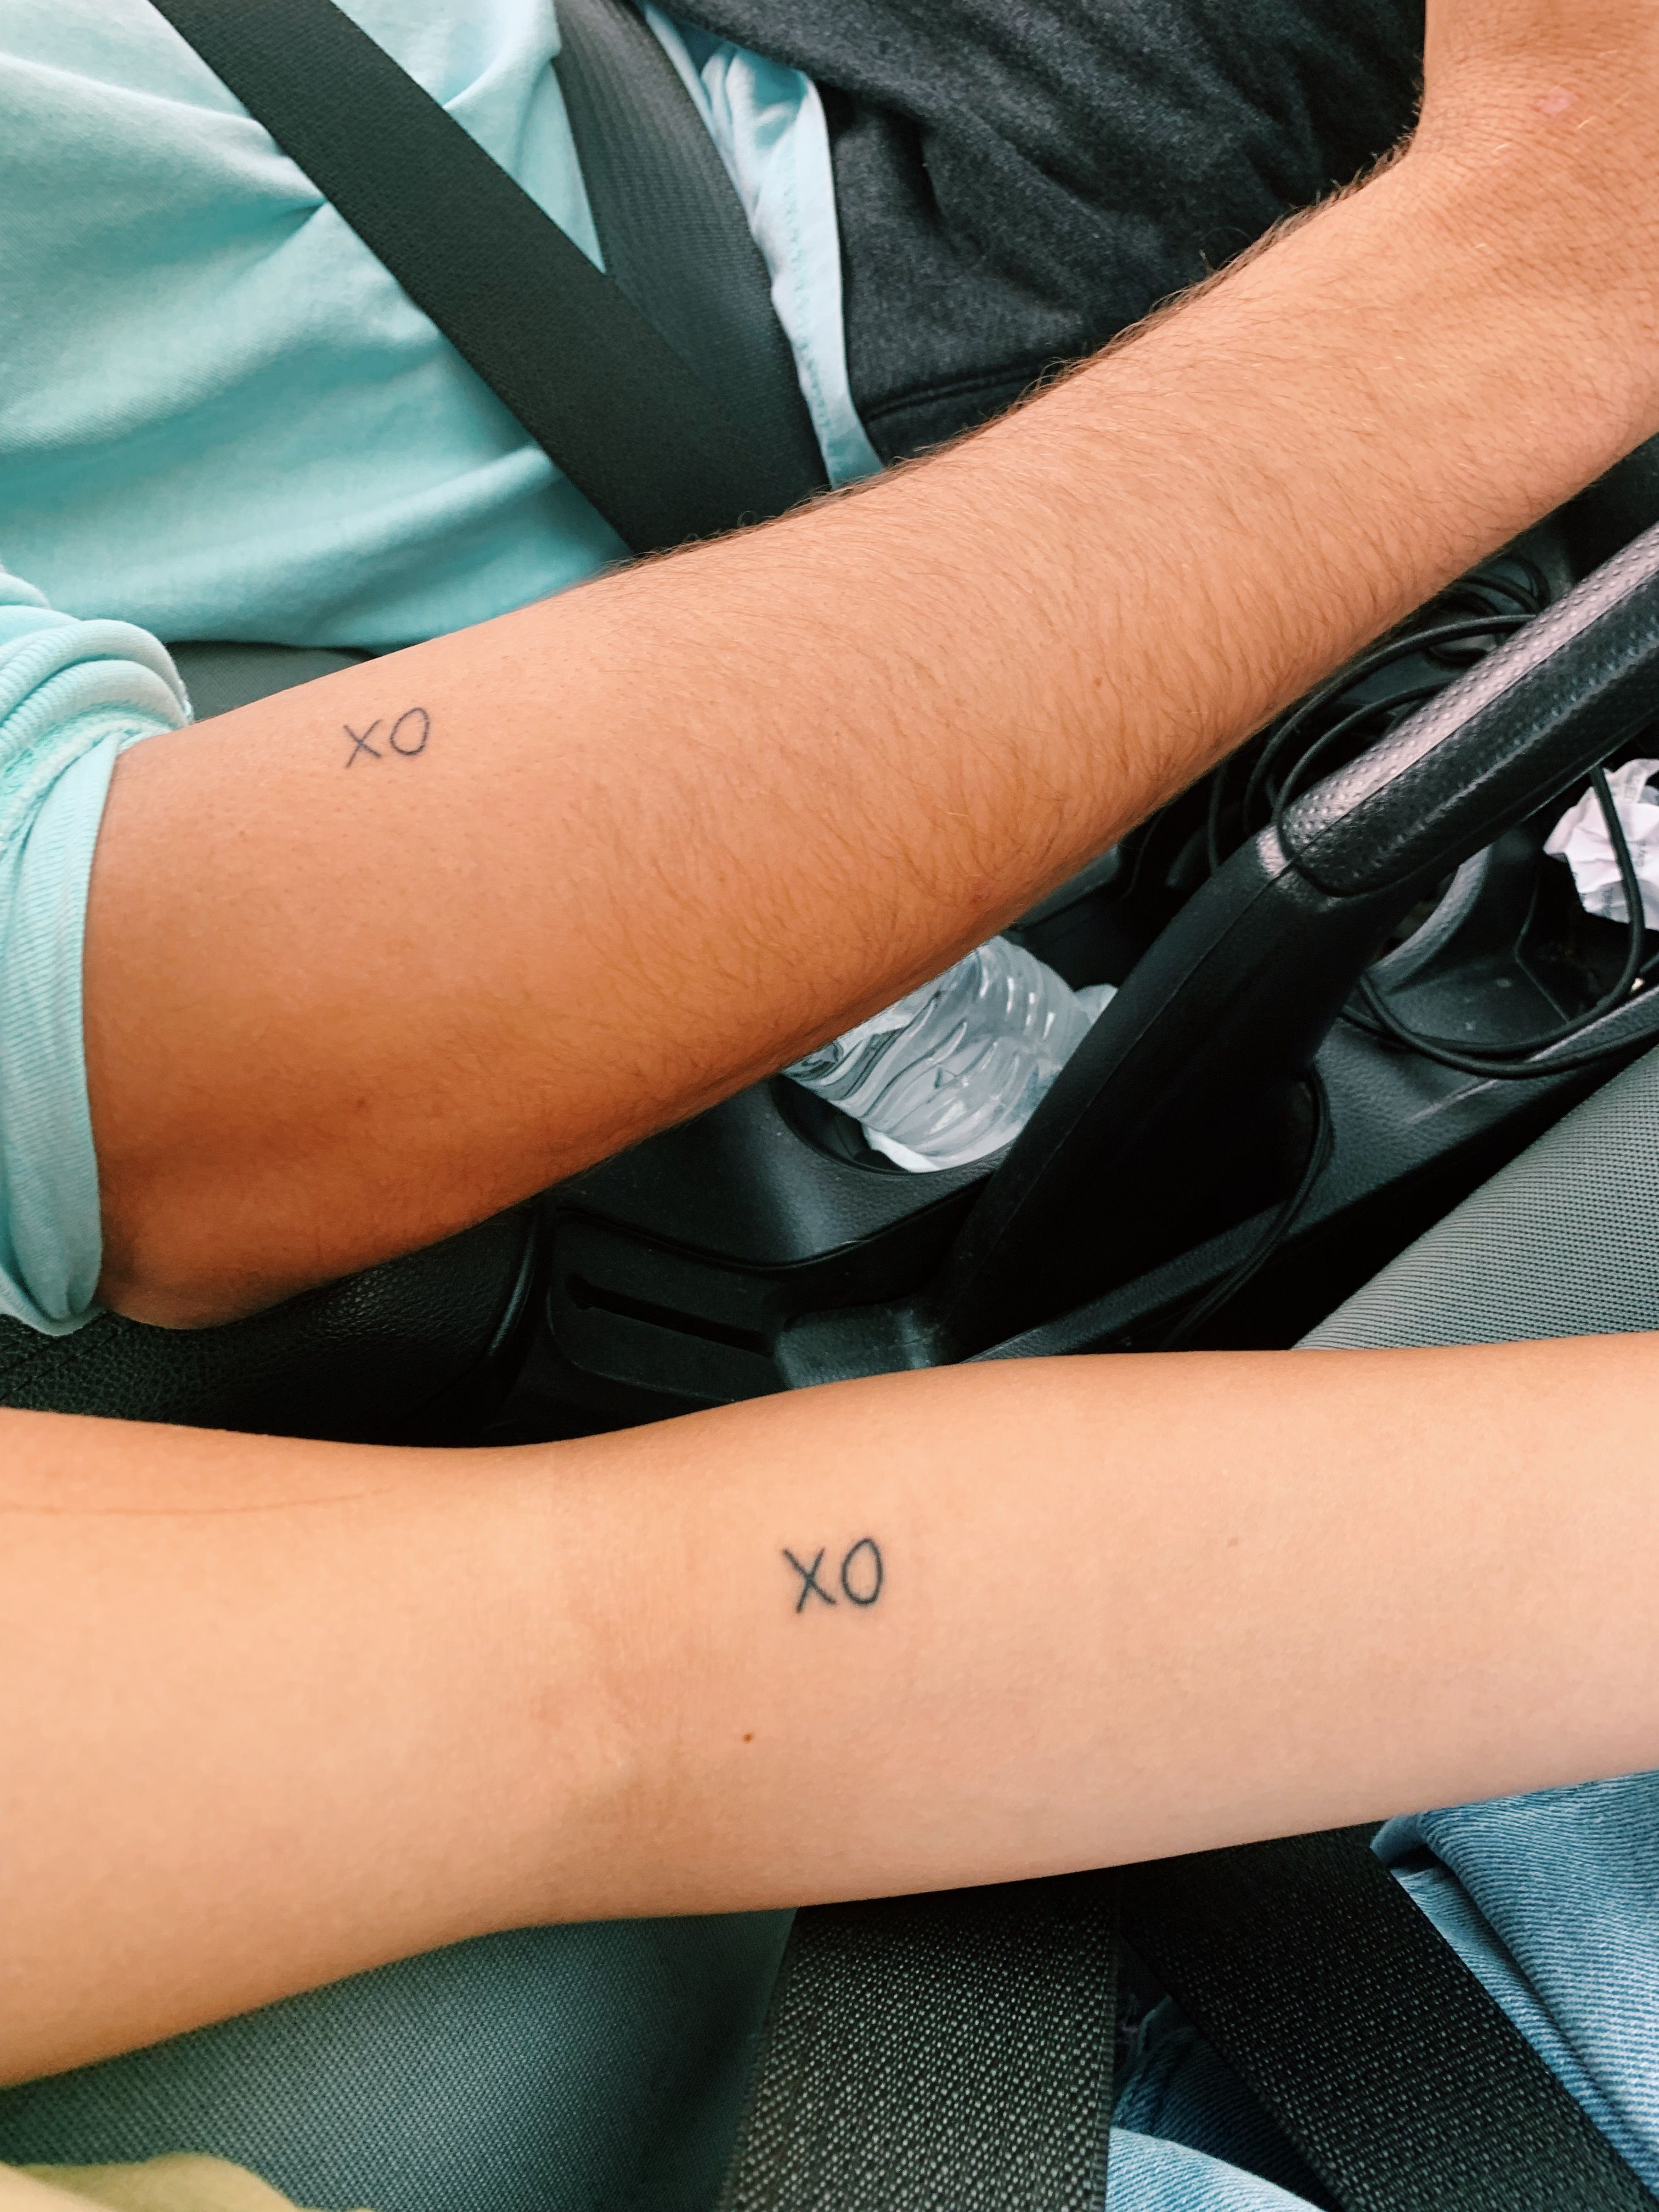 Coupletattoos Xoxo Xoxotattoo Matchingtattoos Matching Couple Tattoos Picture Tattoos Couple Tattoos